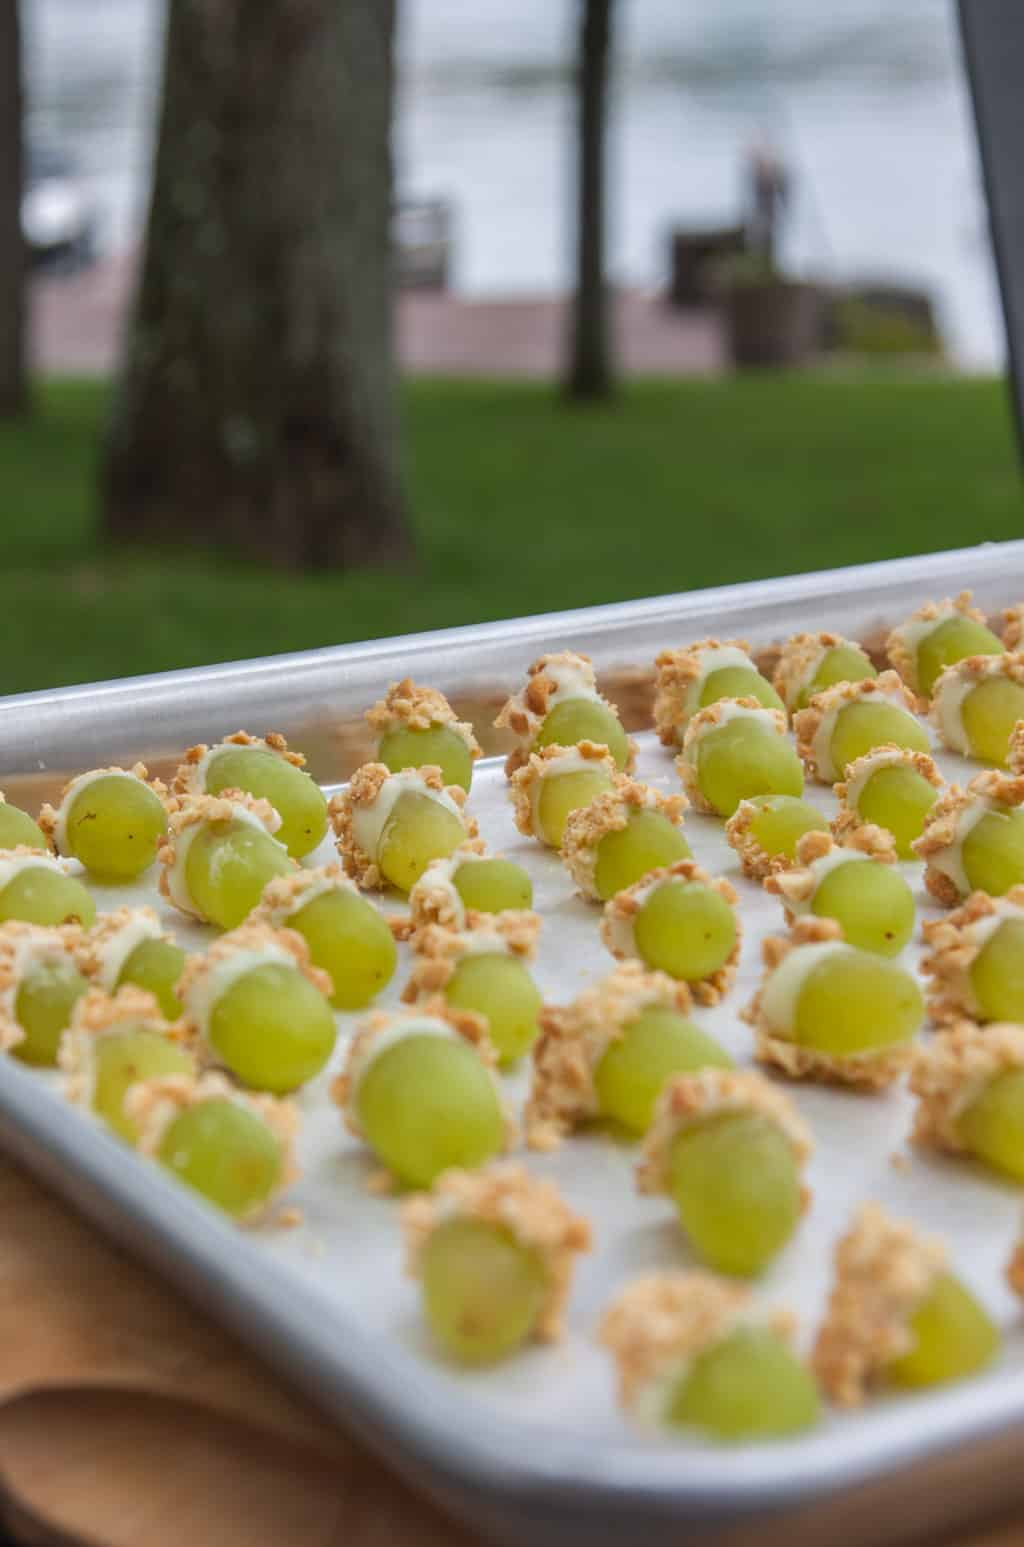 Grapes with white chocolate and peanuts